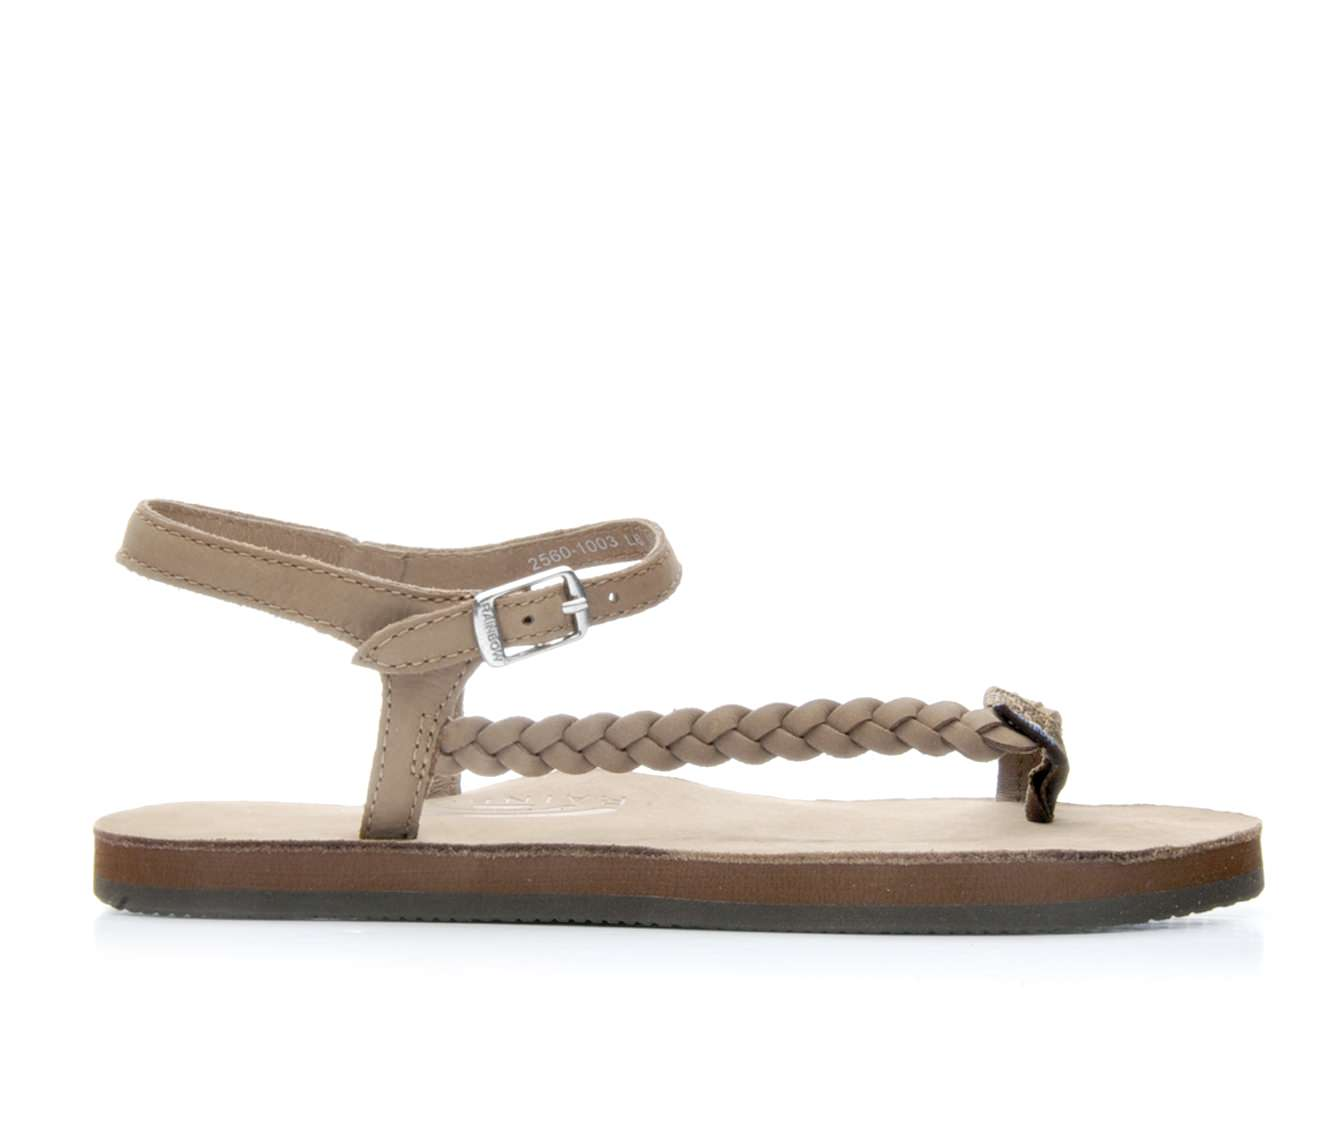 Women's Rainbow Sandals Marley (Beige)